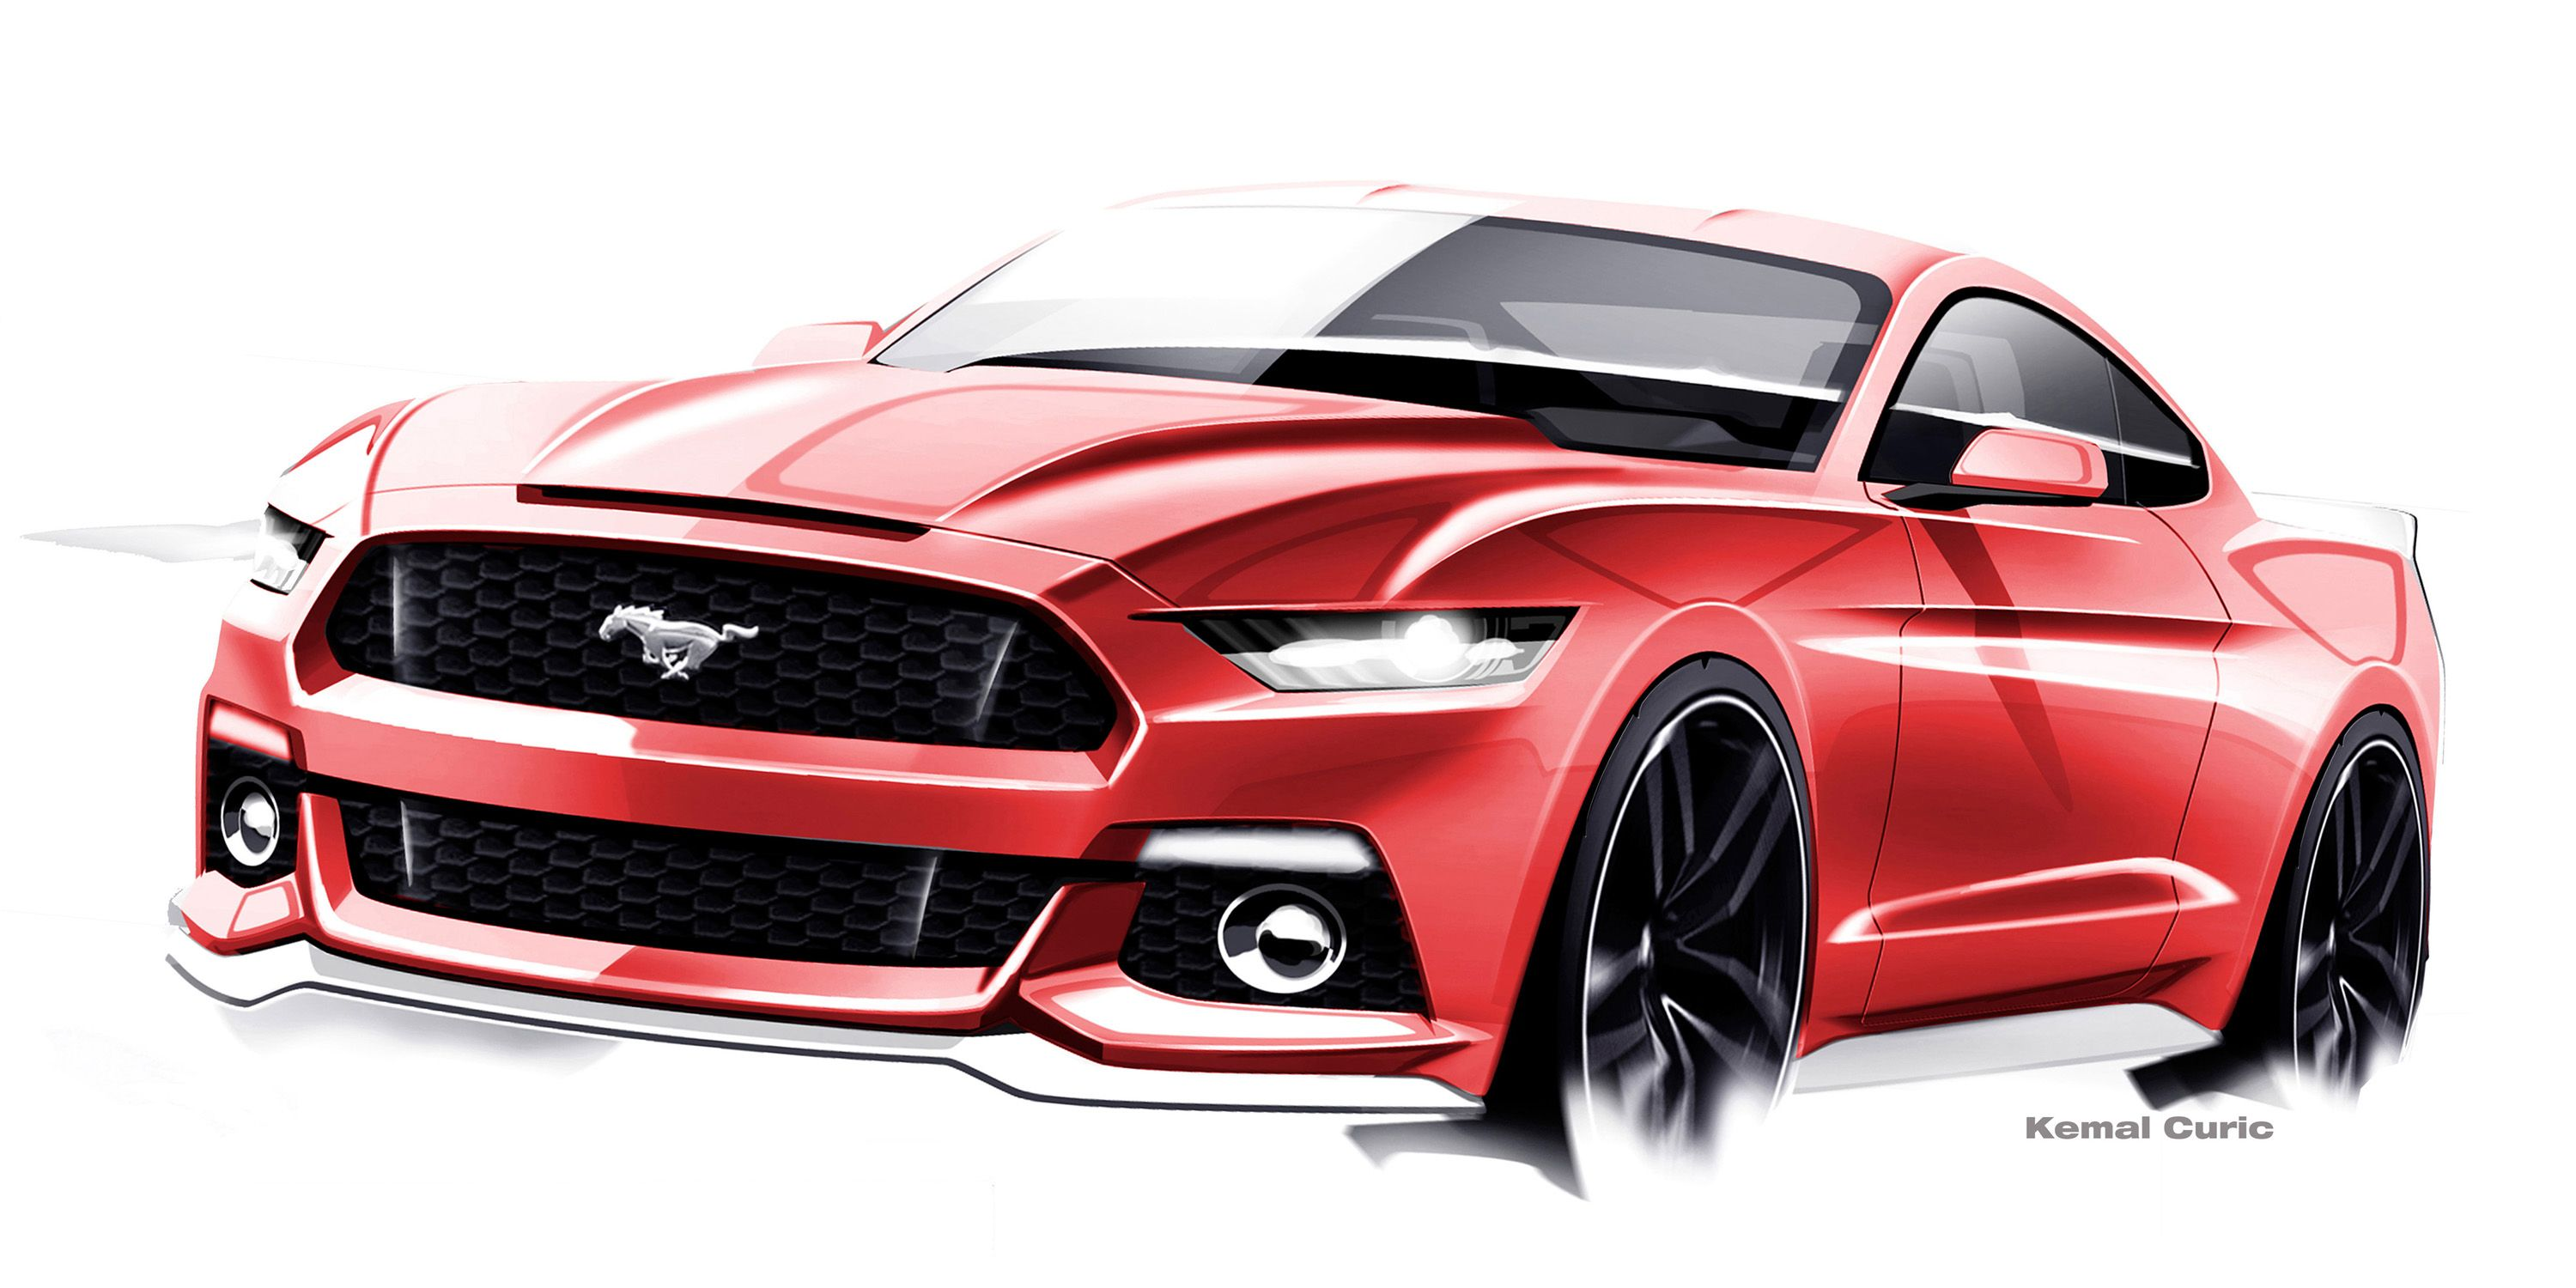 Once the basic design is complete, many refinements occur.Some are to improve appearance, while others are made to satisfy safety or manufacturing requirements.Initial changes may be measured in inches, while final changes can be fractions of an inch. The result in this case is the 2015 Mustang – the 50th anniversary edition of a Ford icon.